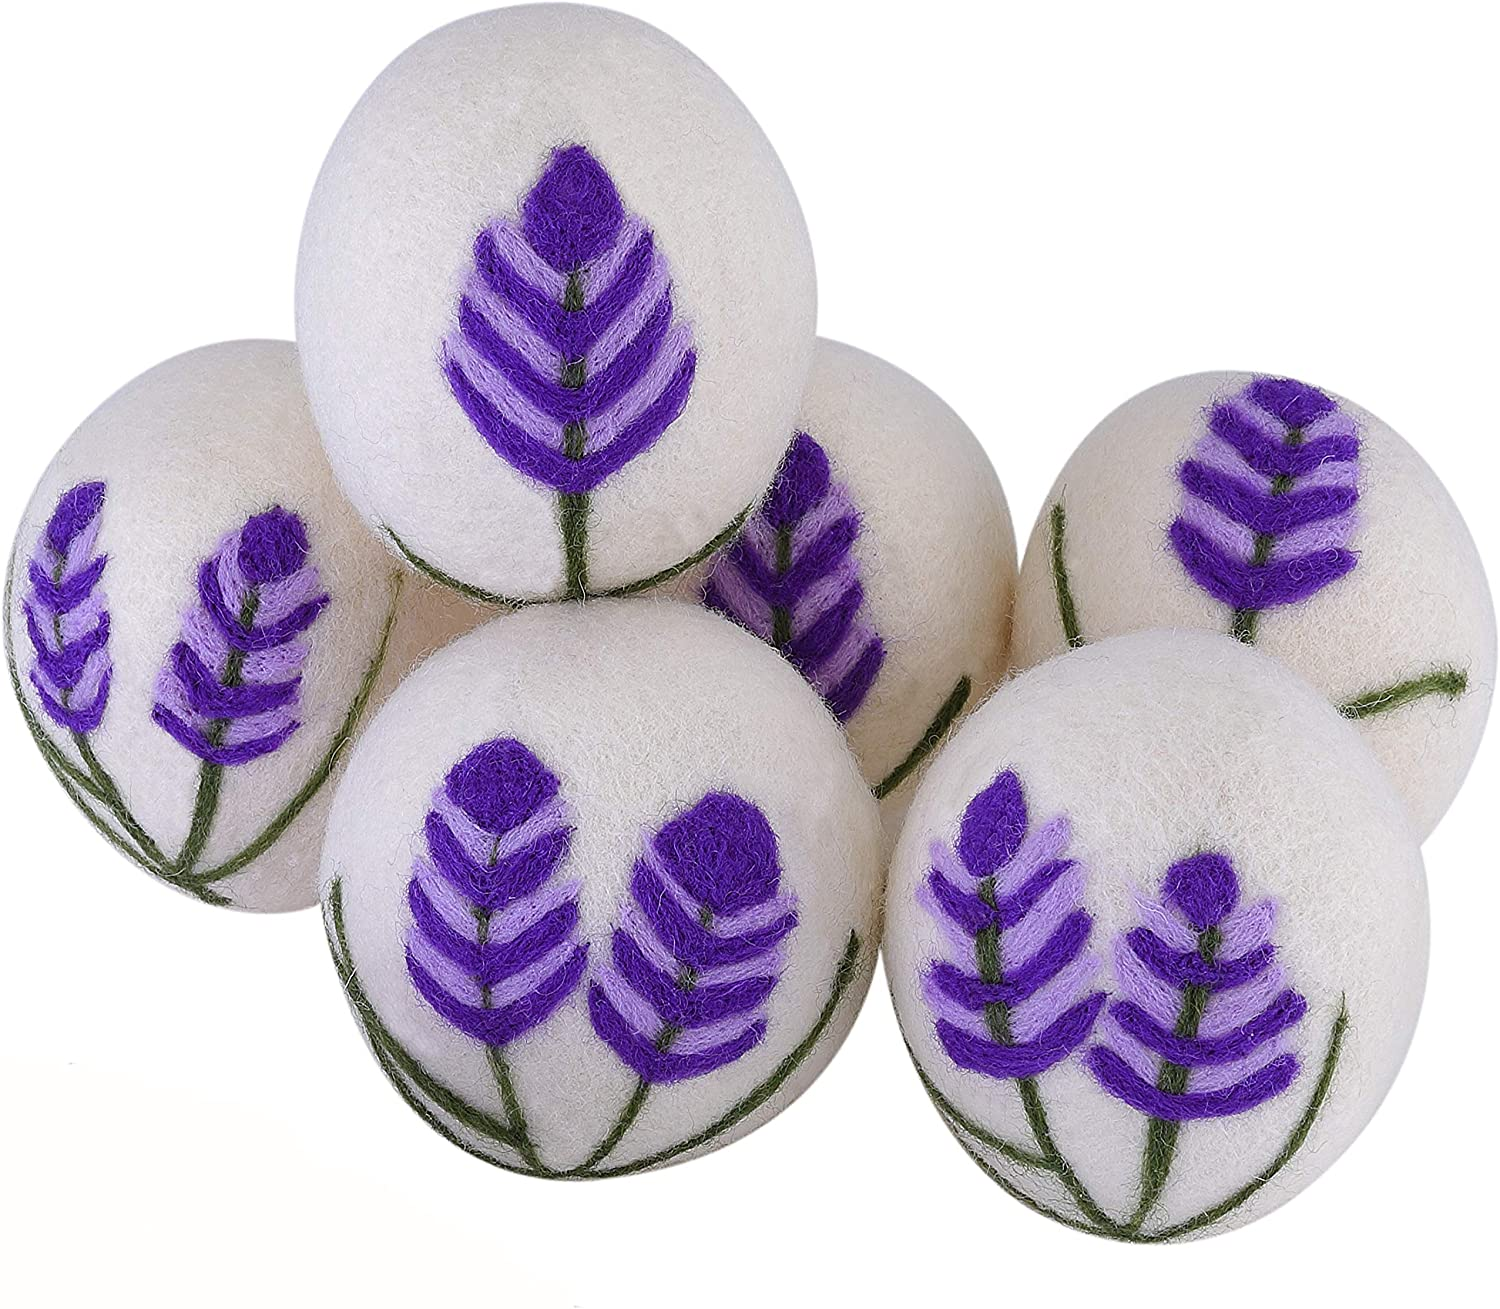 6 French Lavender Wool Dryer Balls, Unscented Organic Baby-Safe Fabric Softener, Pet Hair Remover,Fur Removal Clean Lint Catcher Eco Laundry Balls Wrinkle Release Anti Static,Gifts for Mom(Purple)